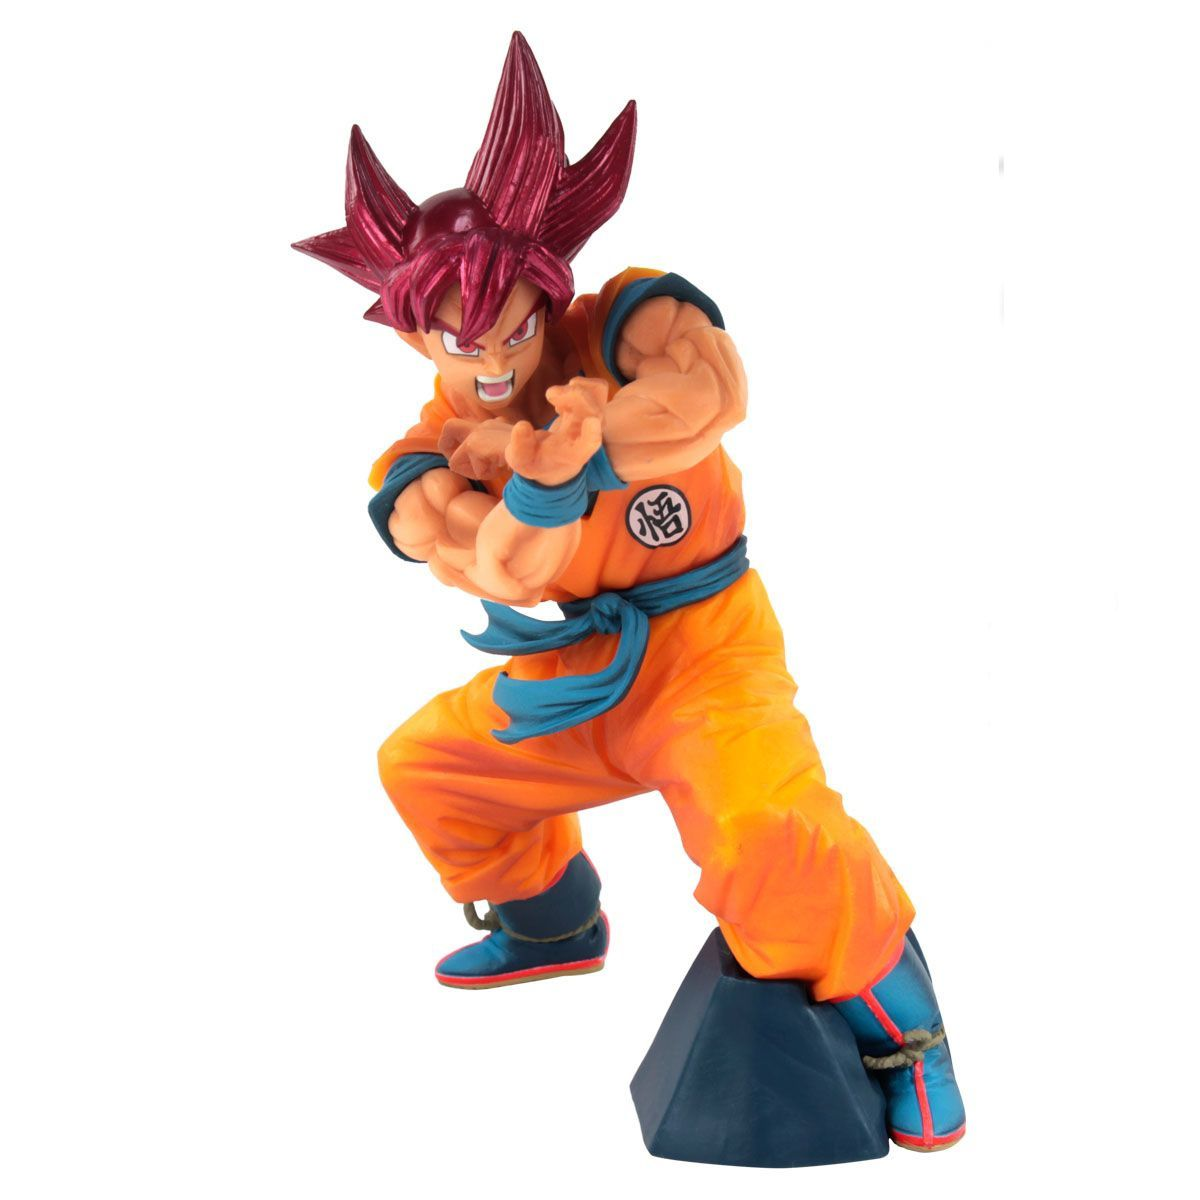 Estátua Goku Super Saiyajin God: Dragon Ball Super (Blood of Saiyans Special VI) Anime Mangá - Banpresto Bandai